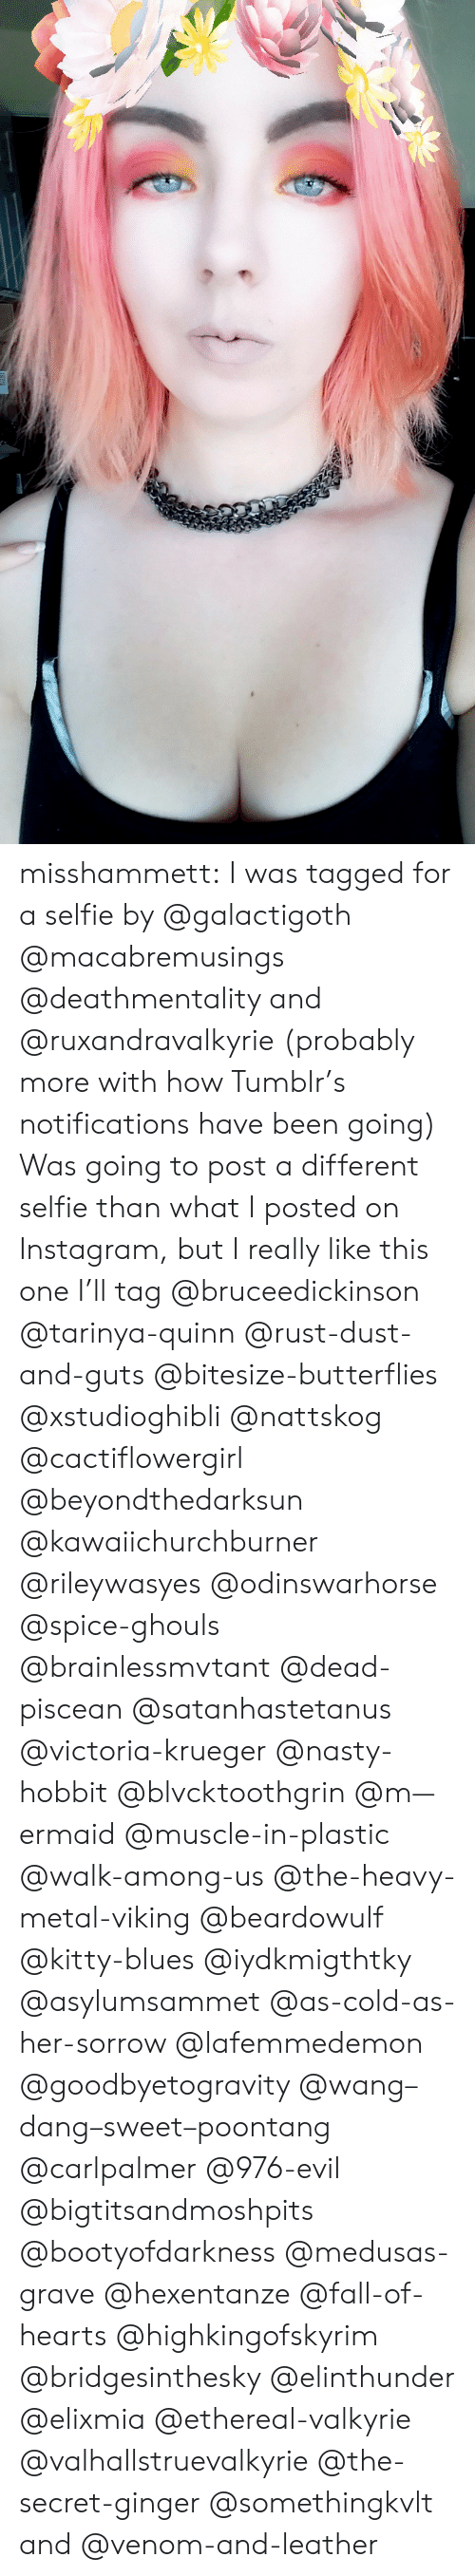 Krueger: misshammett:  I was tagged for a selfie by @galactigoth @macabremusings @deathmentality and @ruxandravalkyrie (probably more with how Tumblr's notifications have been going) Was going to post a different selfie than what I posted on Instagram, but I really like this one  I'll tag @bruceedickinson @tarinya-quinn @rust-dust-and-guts @bitesize-butterflies @xstudioghibli @nattskog @cactiflowergirl @beyondthedarksun @kawaiichurchburner @rileywasyes @odinswarhorse @spice-ghouls @brainlessmvtant @dead-piscean @satanhastetanus @victoria-krueger @nasty-hobbit @blvcktoothgrin @m—ermaid @muscle-in-plastic @walk-among-us @the-heavy-metal-viking @beardowulf @kitty-blues @iydkmigthtky @asylumsammet @as-cold-as-her-sorrow @lafemmedemon @goodbyetogravity @wang–dang–sweet–poontang @carlpalmer @976-evil @bigtitsandmoshpits @bootyofdarkness @medusas-grave @hexentanze @fall-of-hearts @highkingofskyrim @bridgesinthesky @elinthunder @elixmia @ethereal-valkyrie @valhallstruevalkyrie @the-secret-ginger @somethingkvlt and @venom-and-leather